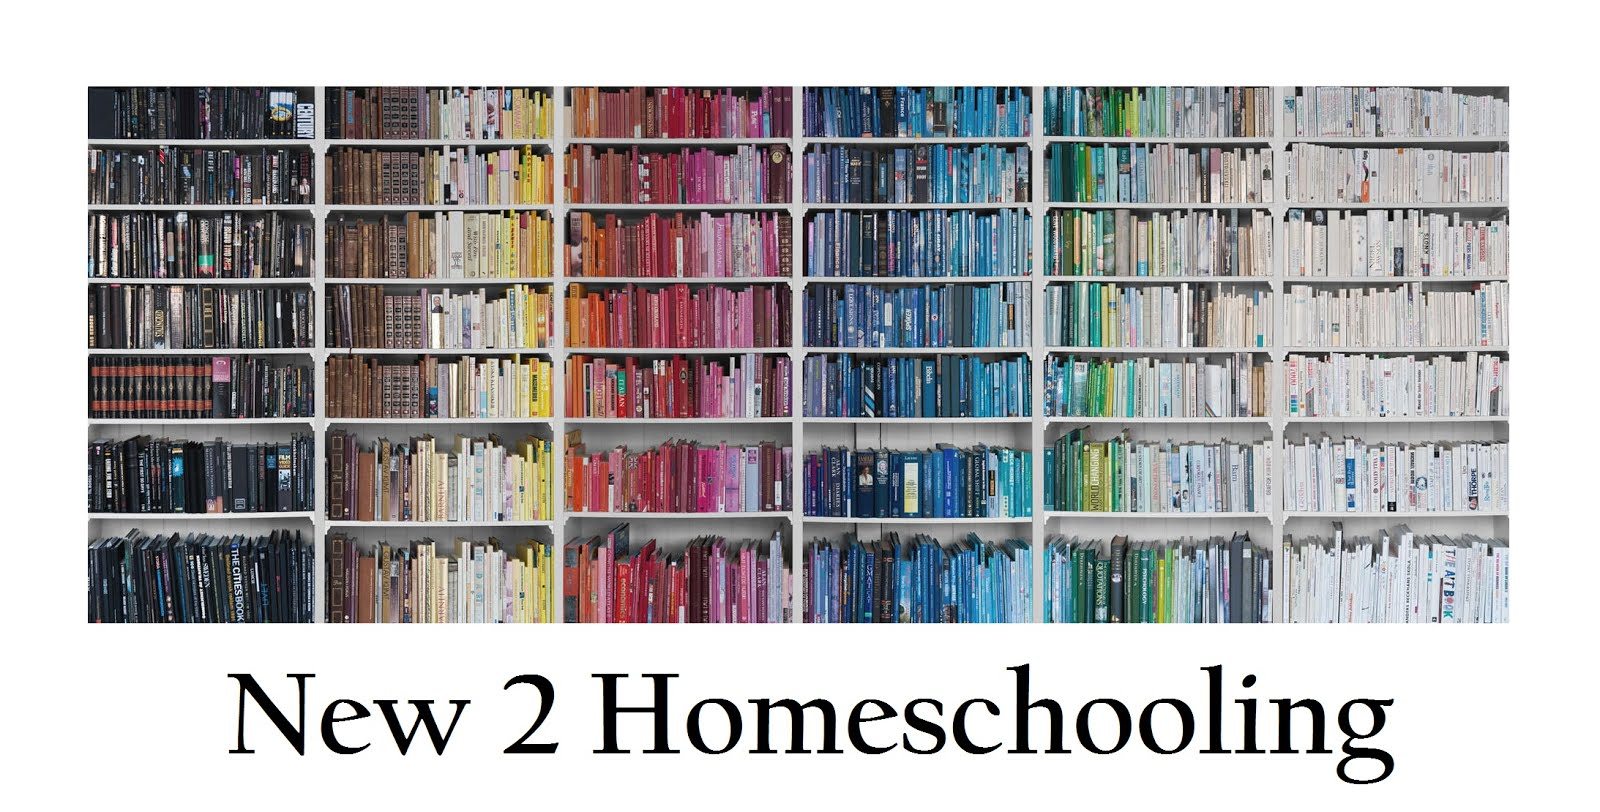 New 2 Homeschooling